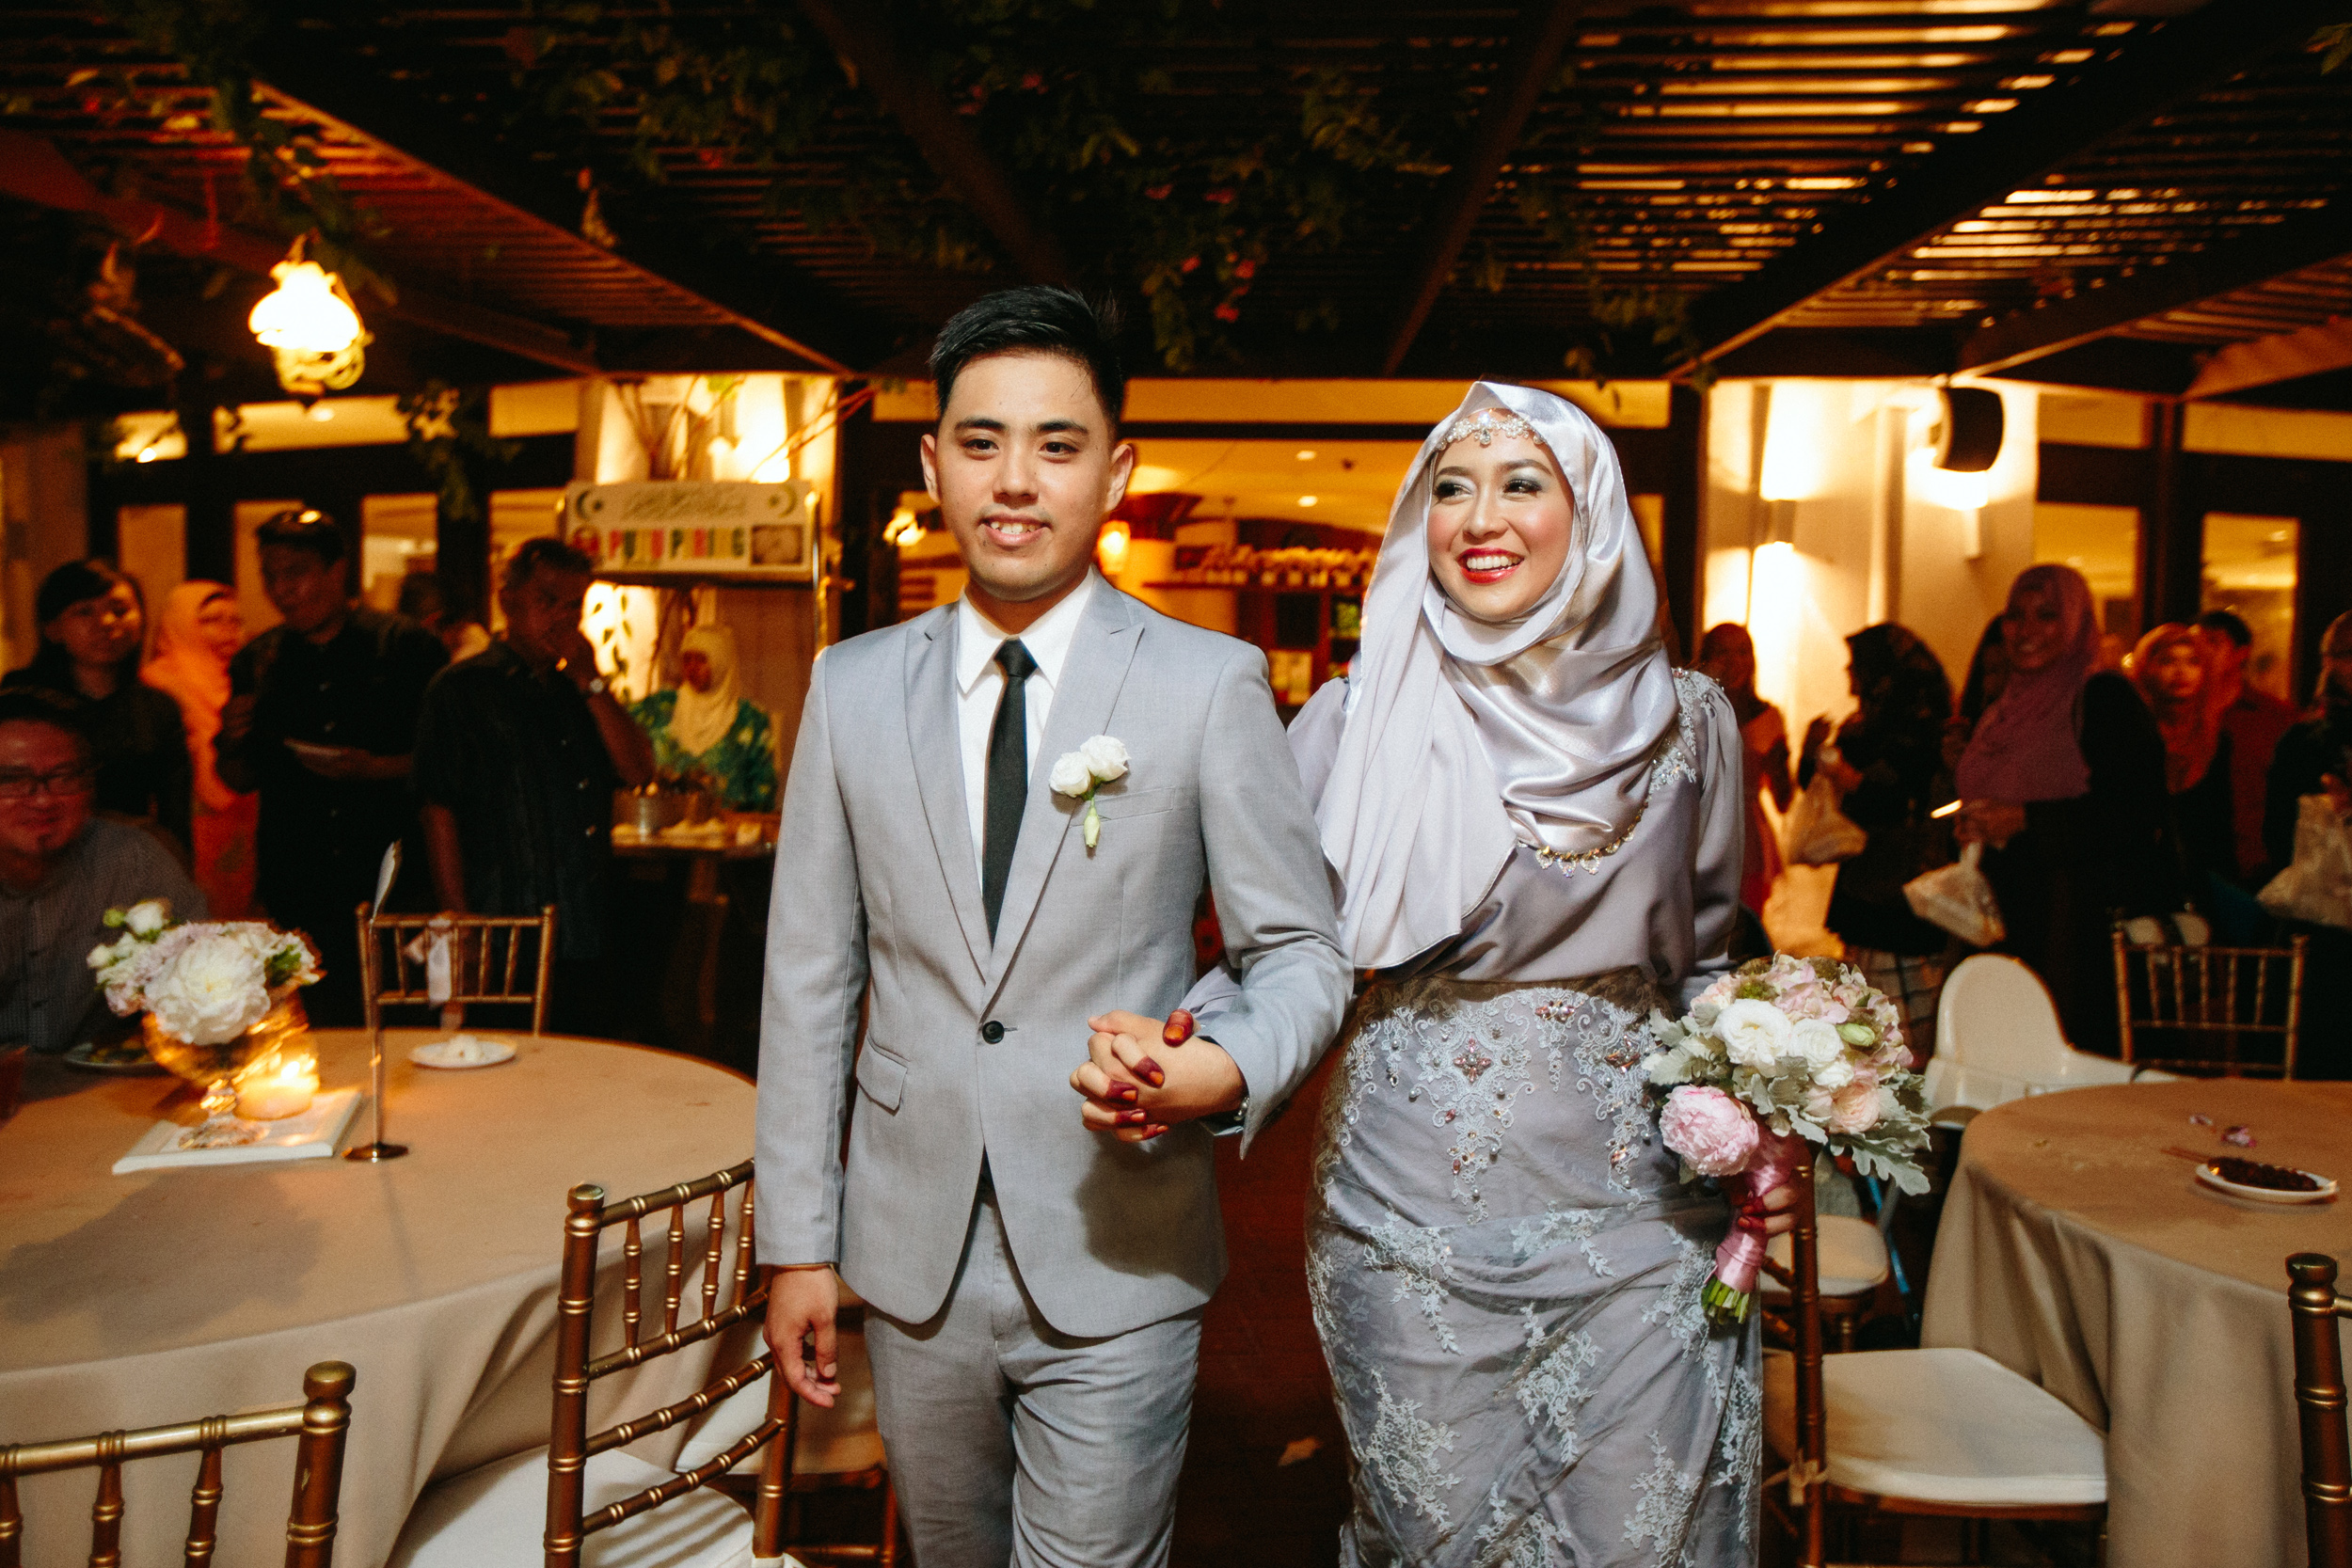 singapore-wedding-photographer-wemadethese-aisyah-helmi-69.jpg